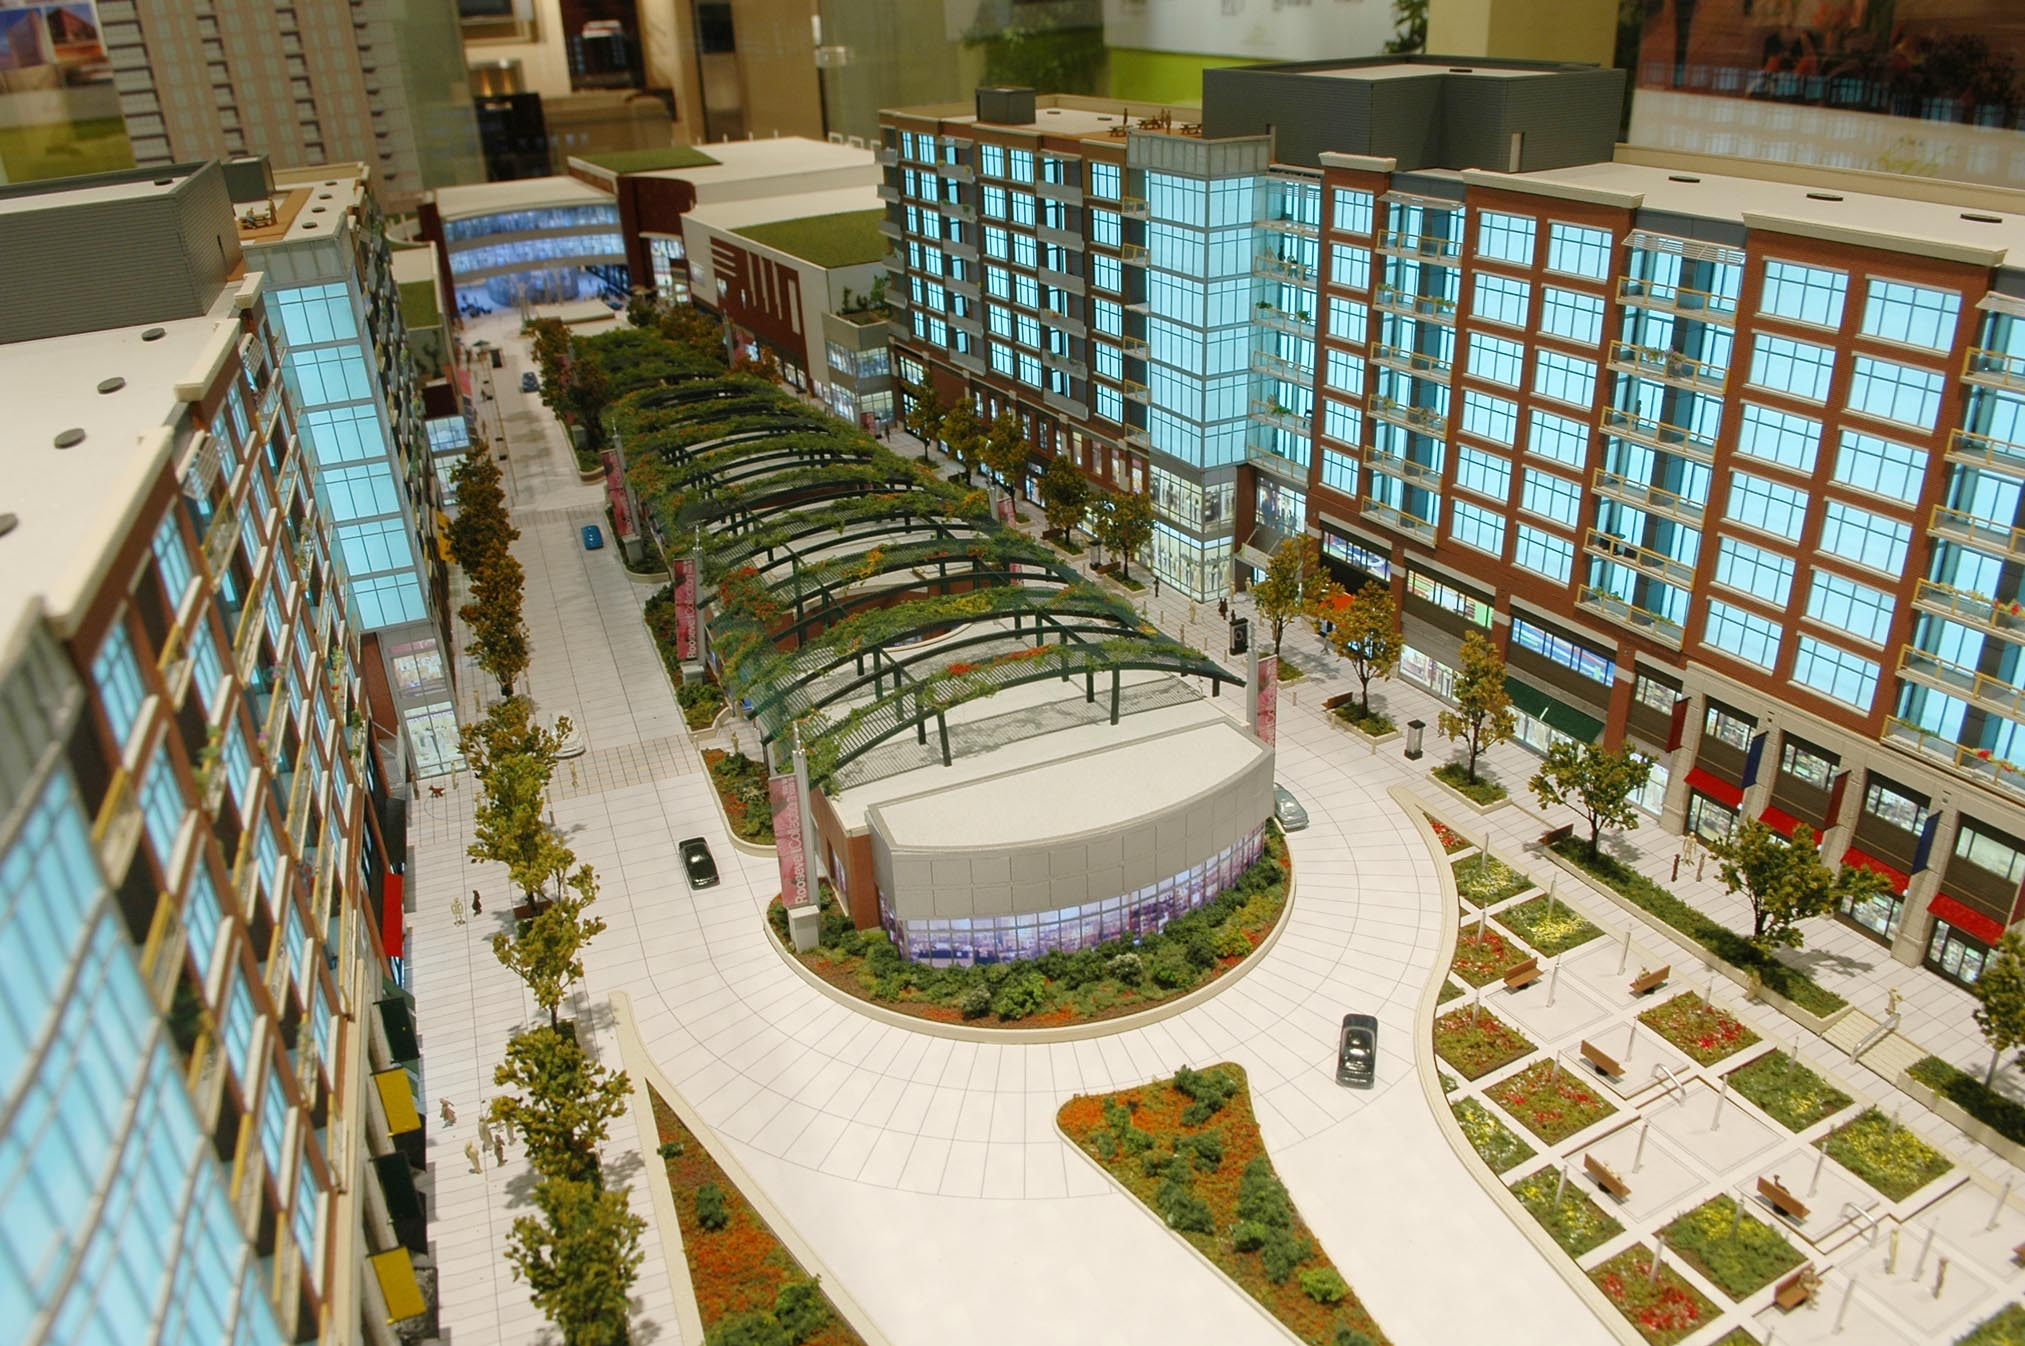 A model for The Lofts at Roosevelt Collection, a major development underway along Roosevelt Road, between Wells Street and the Metra tracks, shows a pedestrian boulevard lined with shops.